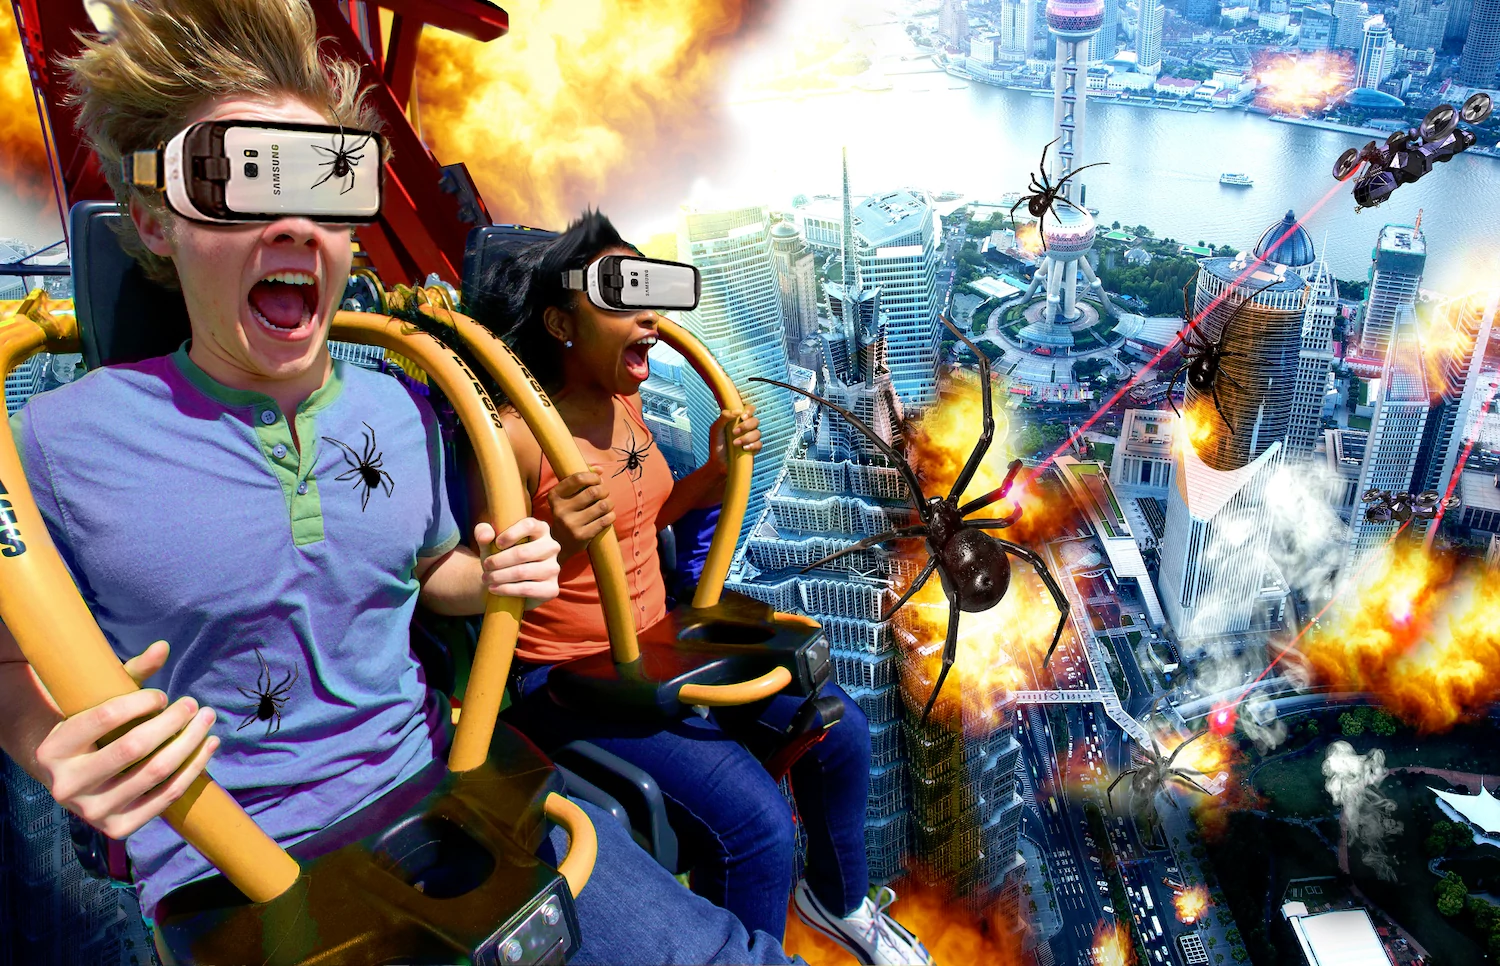 drop-of-doom-vr-at-six-flags-over-georgia-in-2017